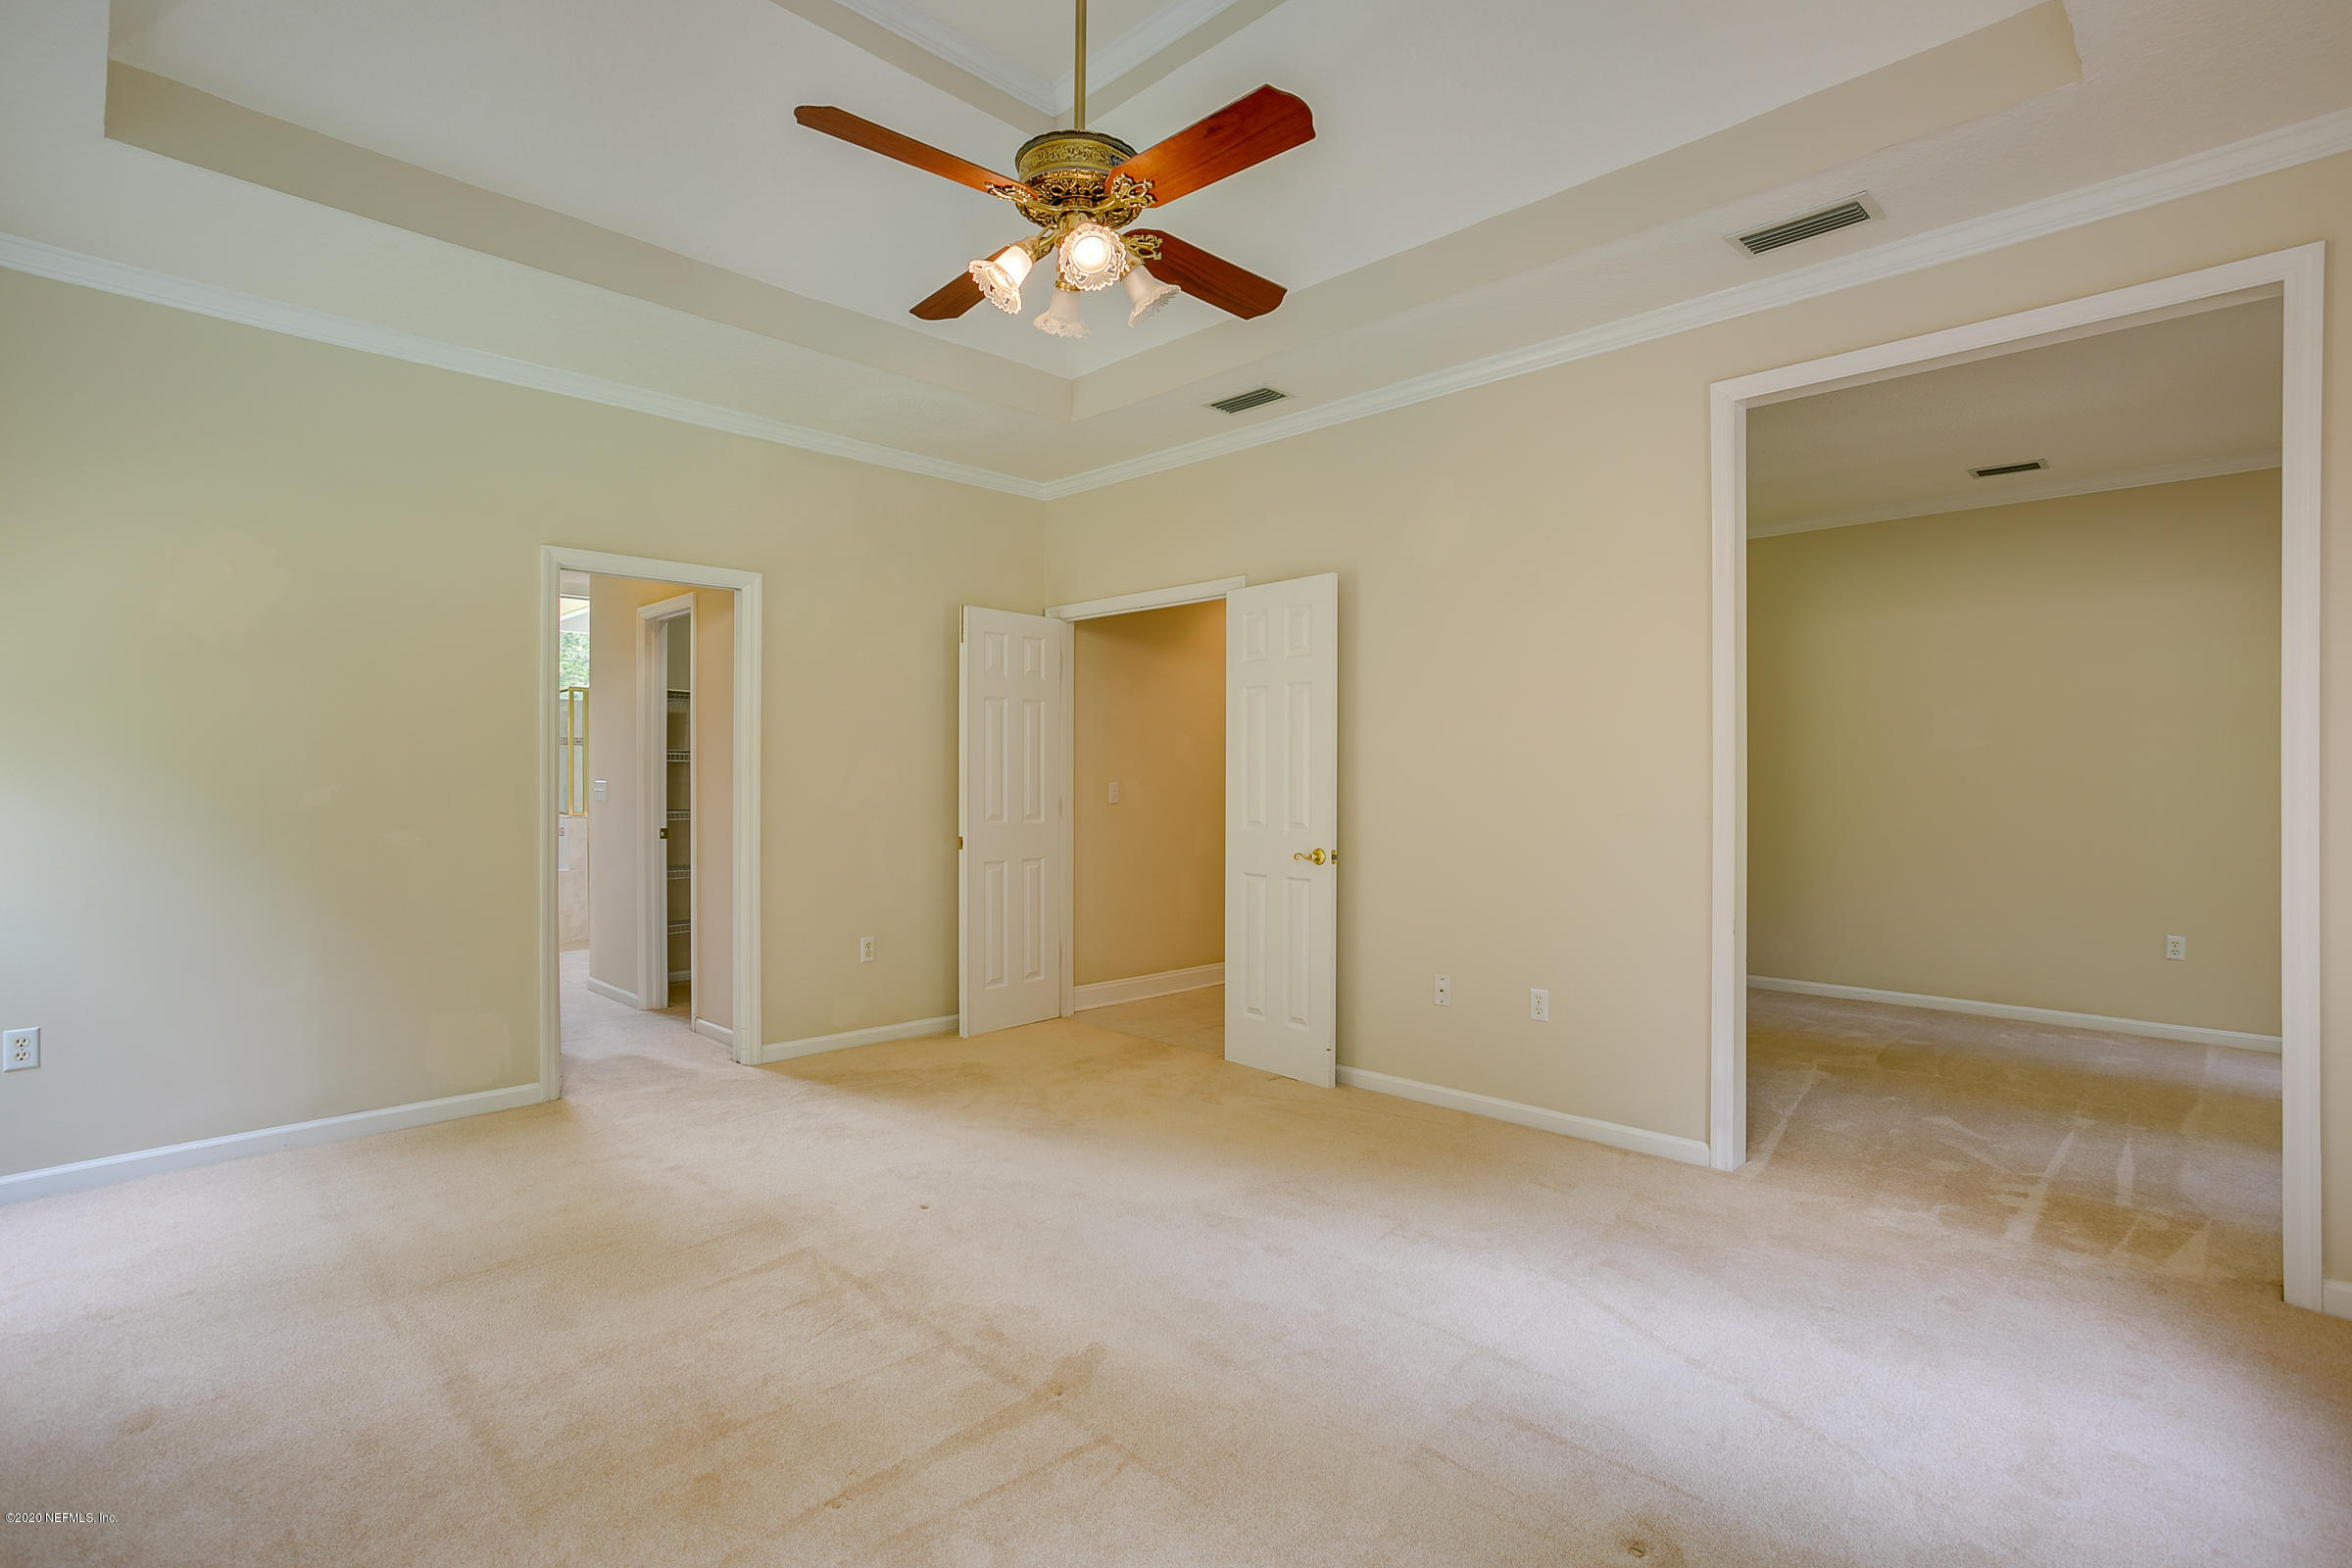 3185 JOE ASHTON, ST AUGUSTINE, FLORIDA 32092, 3 Bedrooms Bedrooms, ,3 BathroomsBathrooms,Residential,For sale,JOE ASHTON,1056503